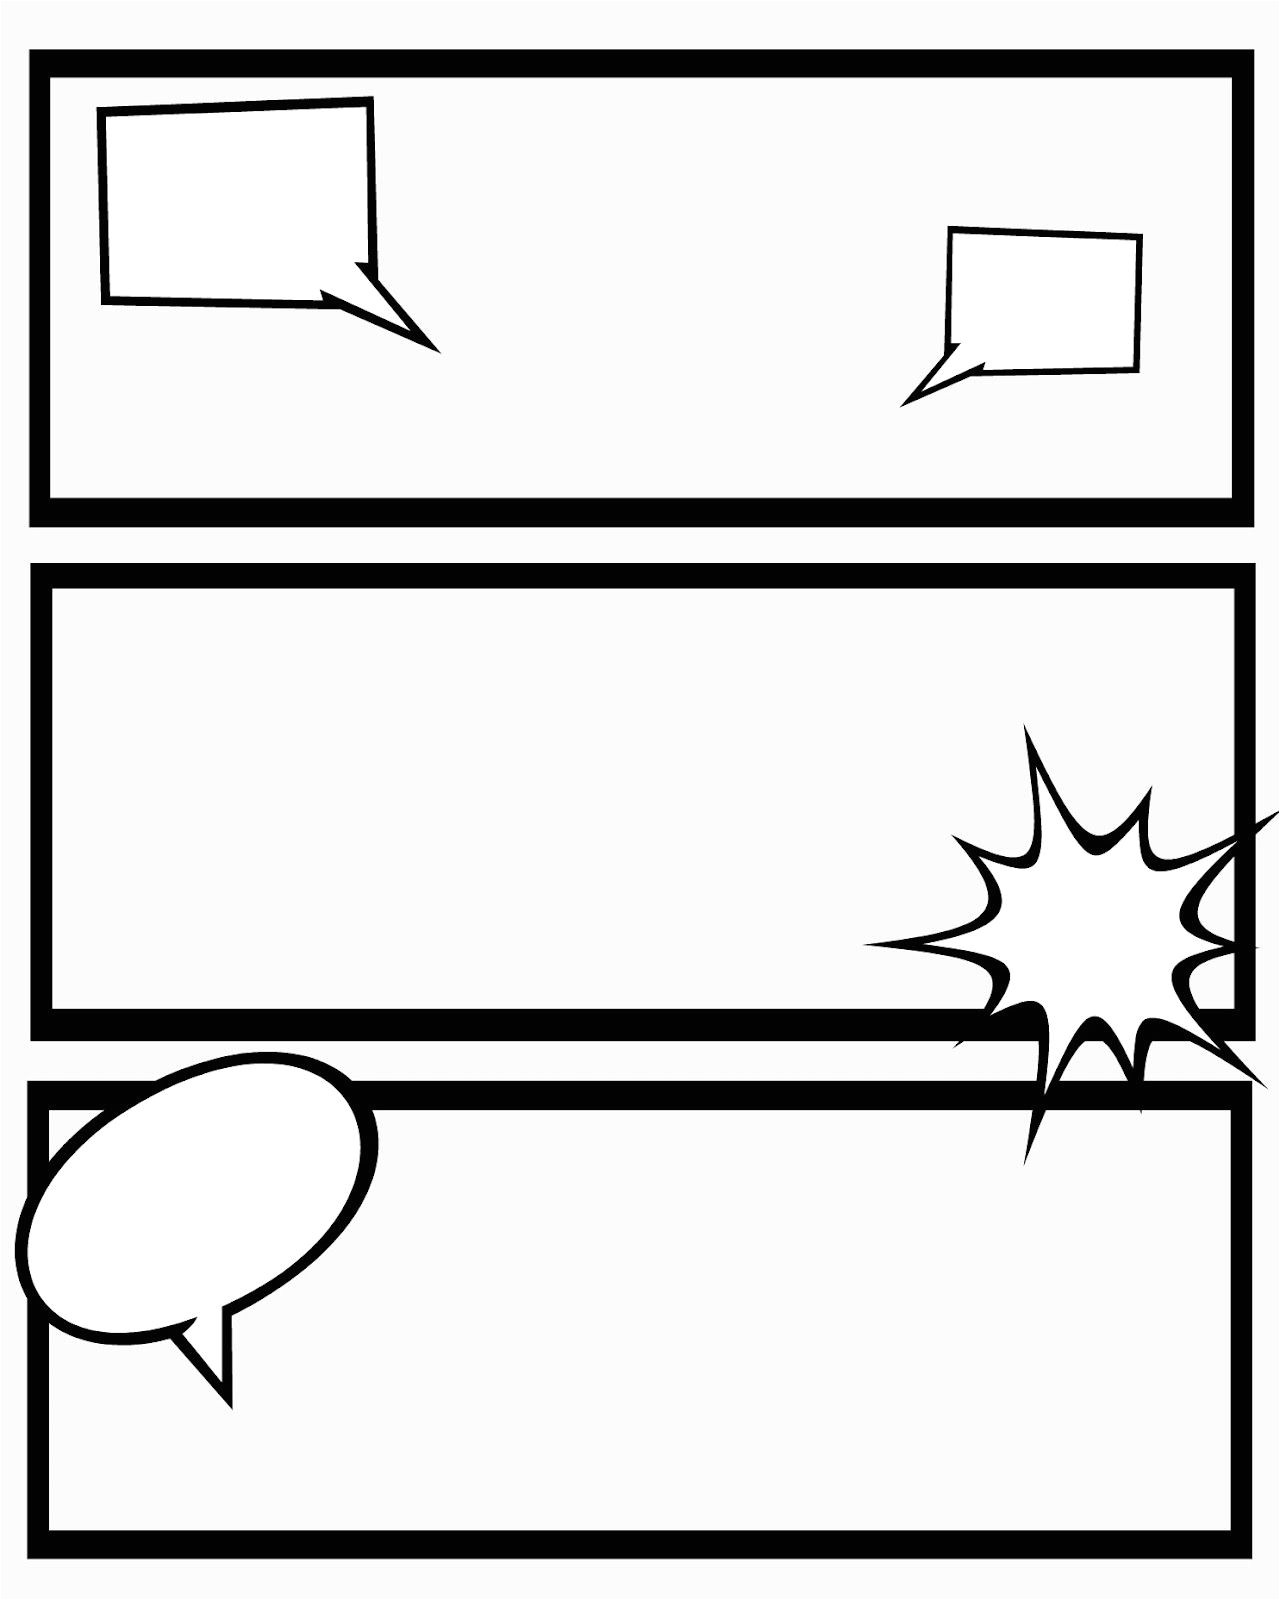 Comic Template Creator Printable Comic Strips for Narration Sweet Hot Mess